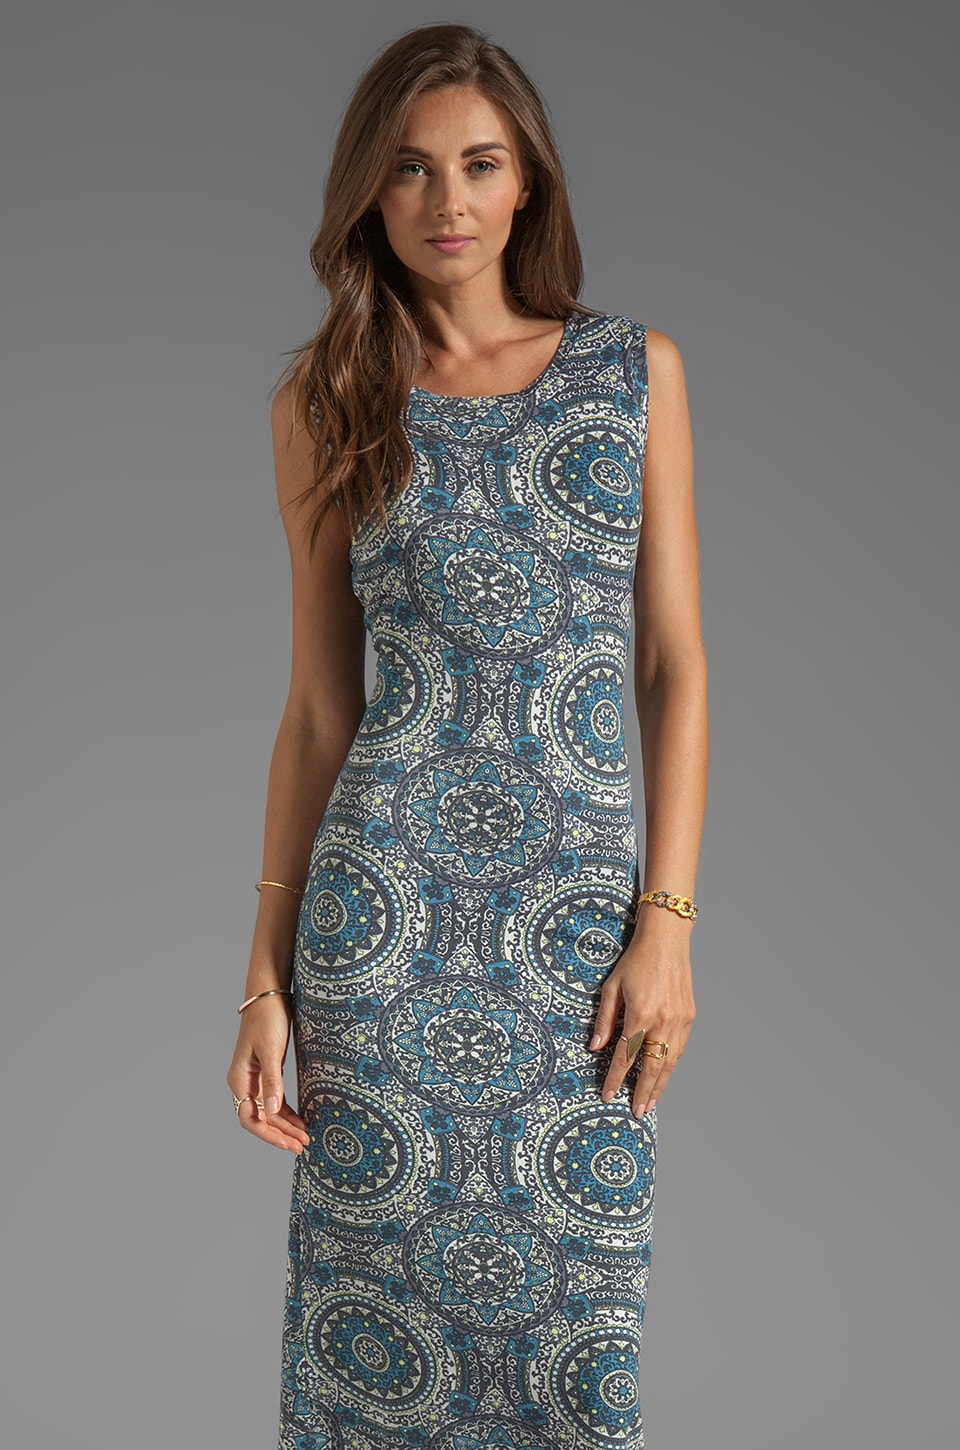 Free People Love From London Dress in Slate Combo